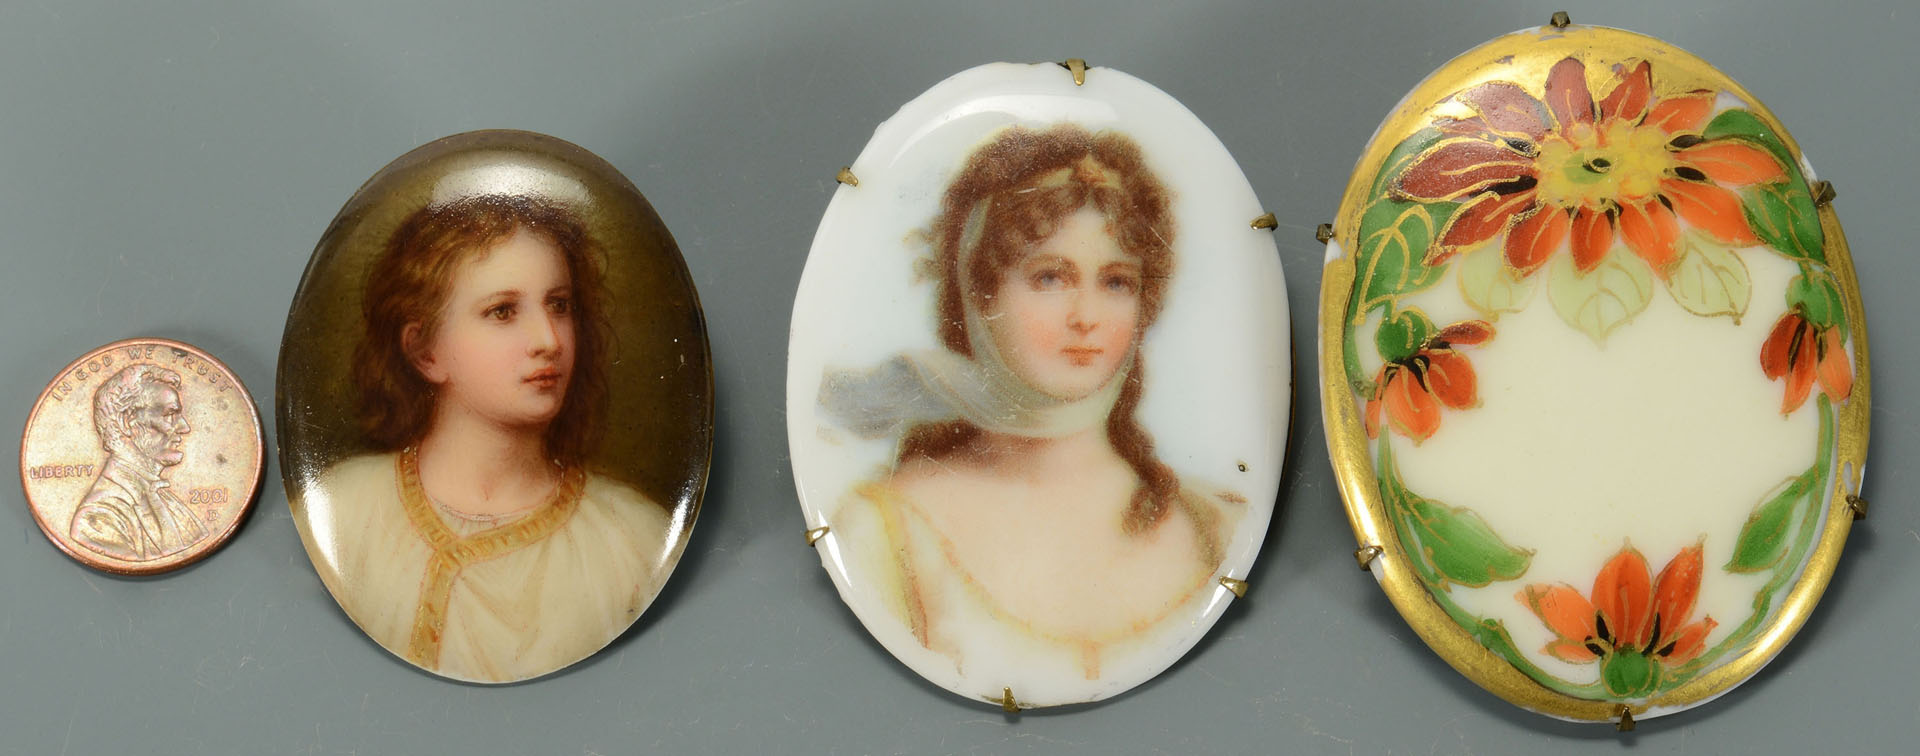 Lot 741: Three miniature paintings on porcelain inc. 2 pins